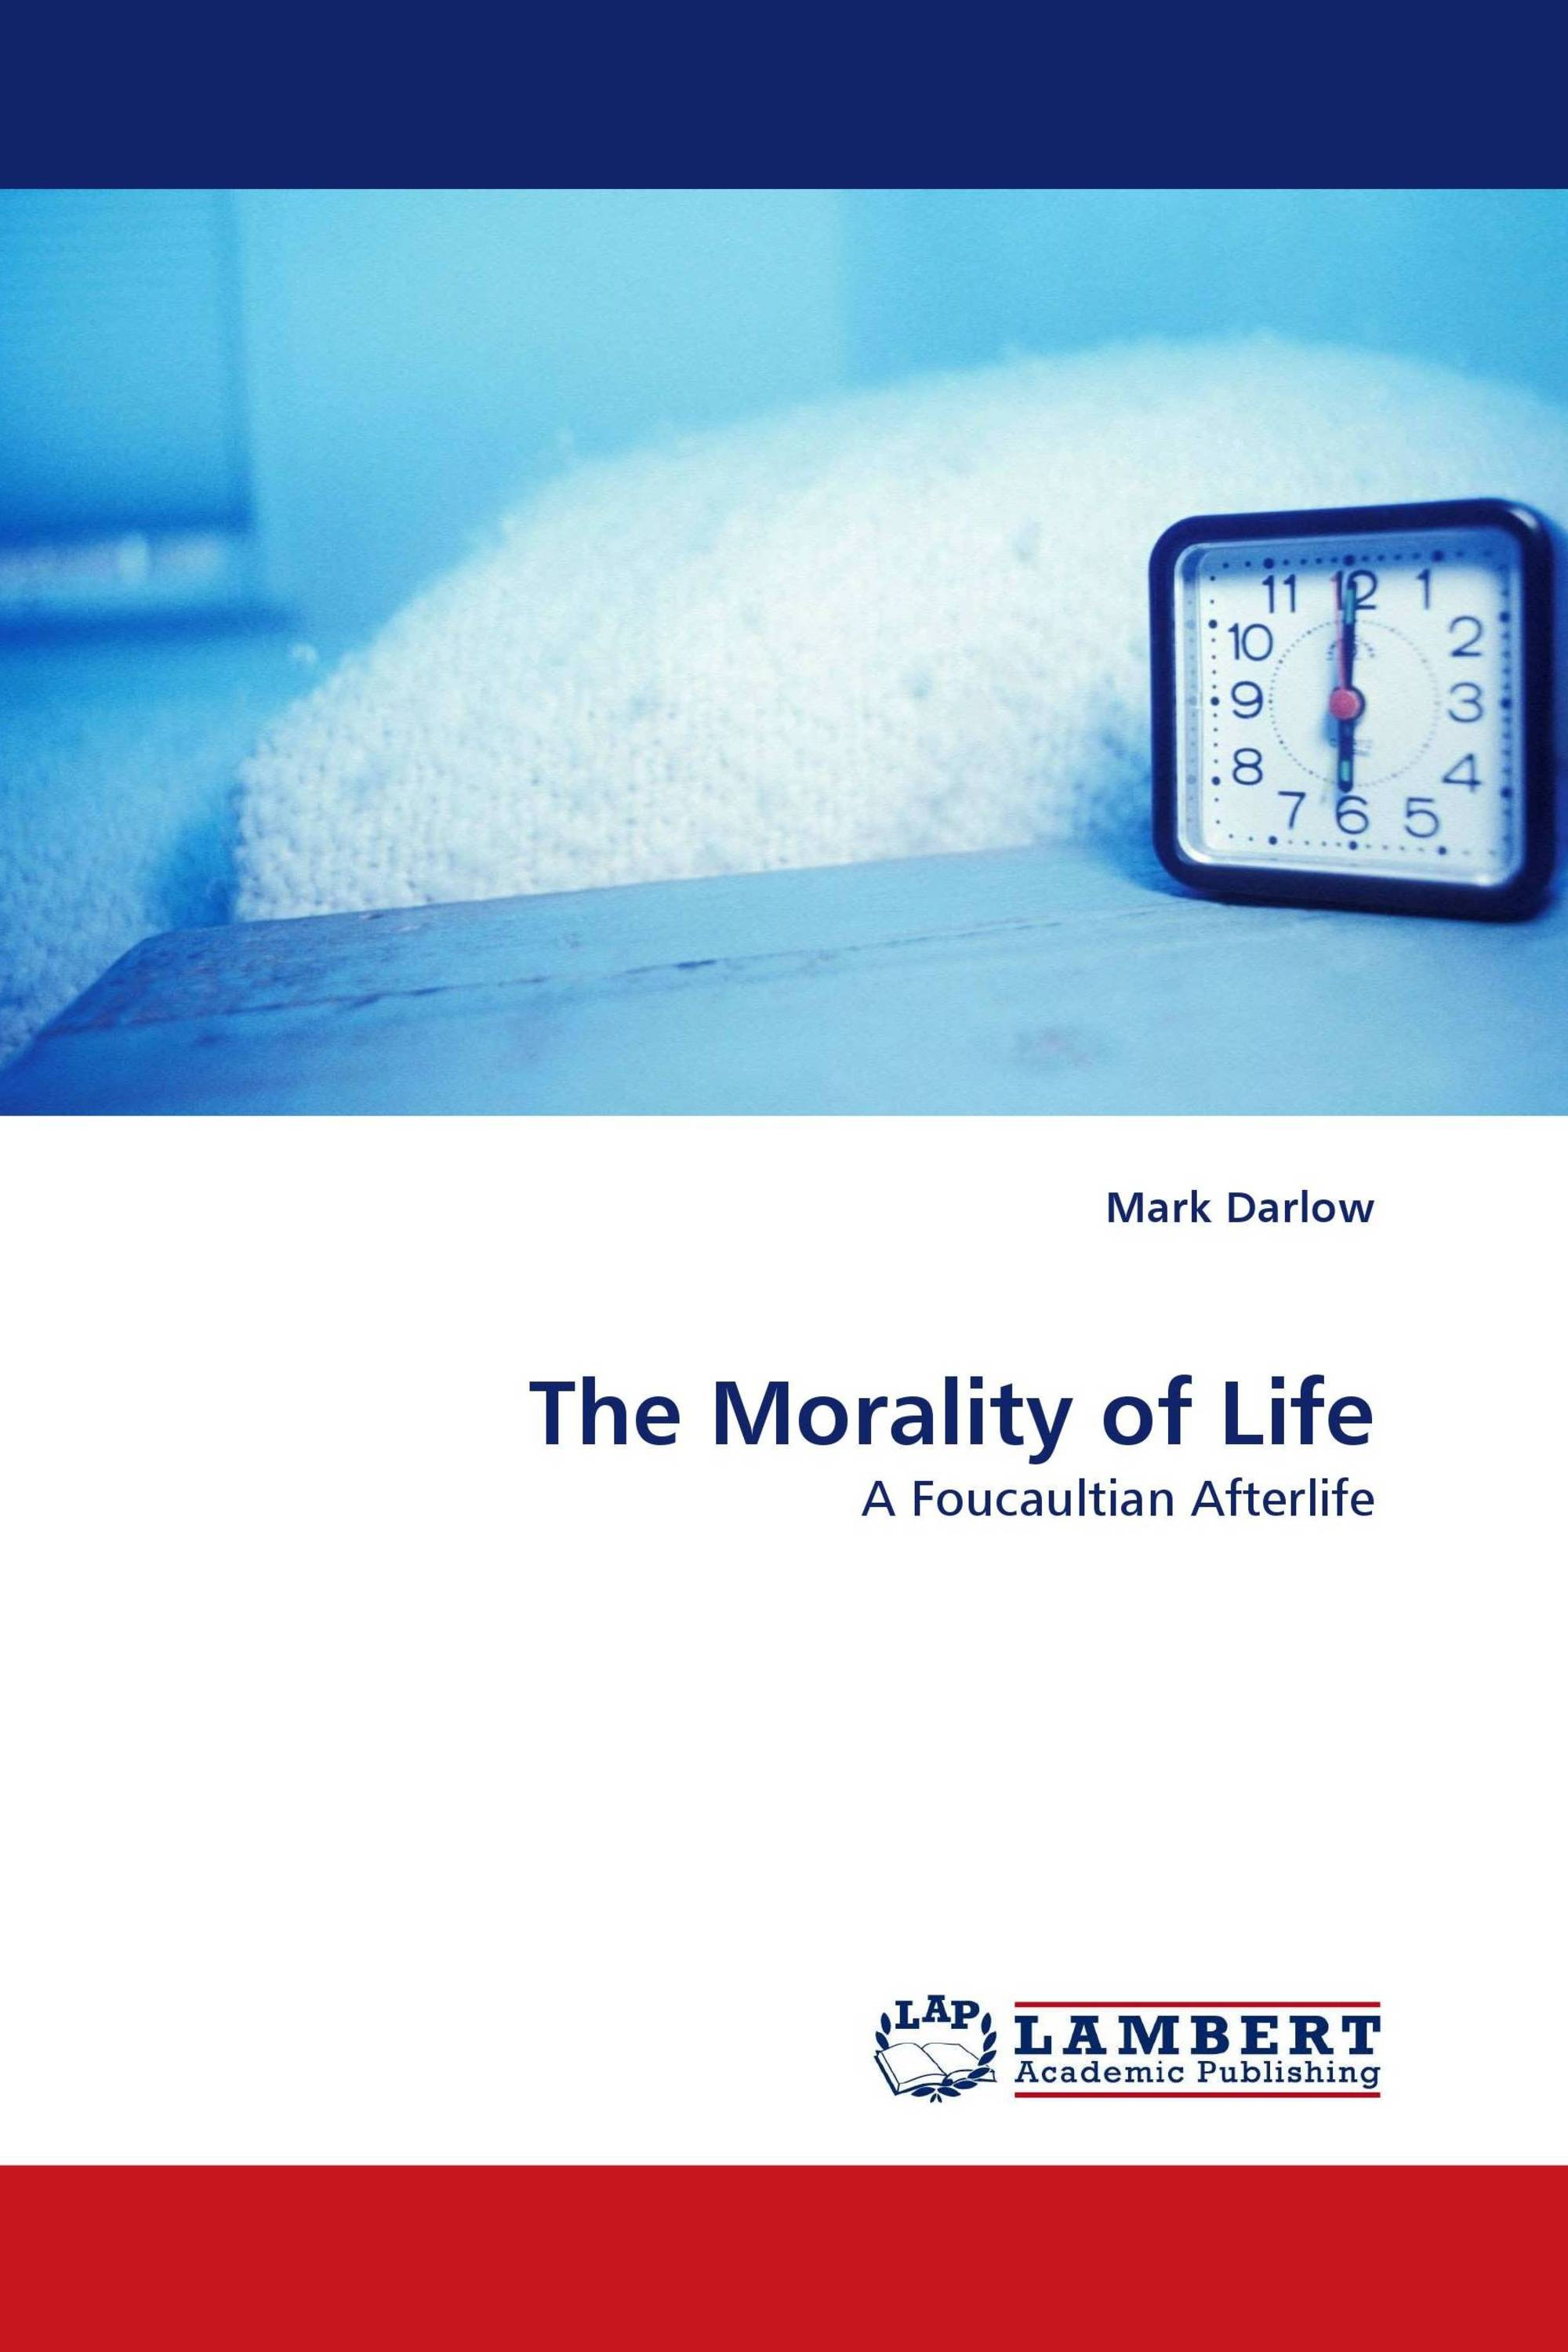 The Morality of Life